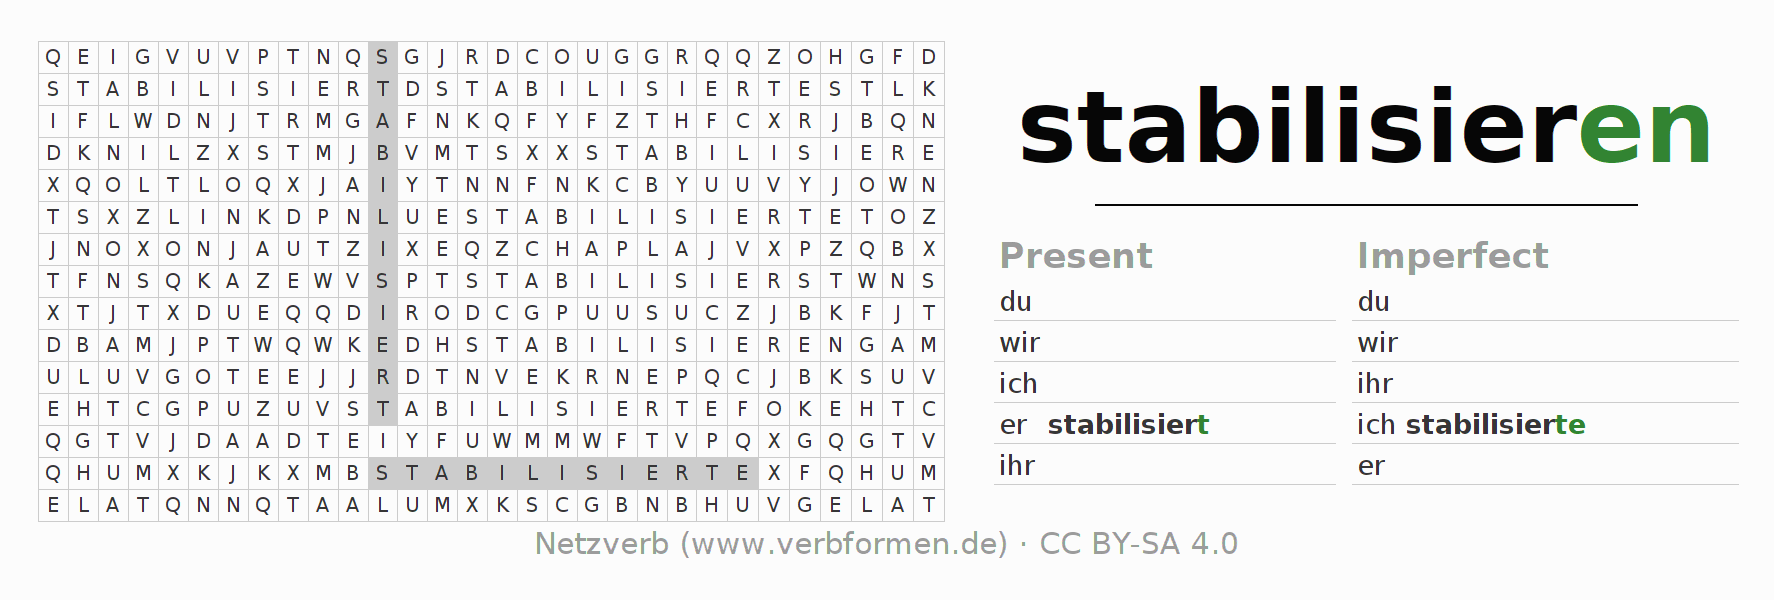 Word search puzzle for the conjugation of the verb stabilisieren